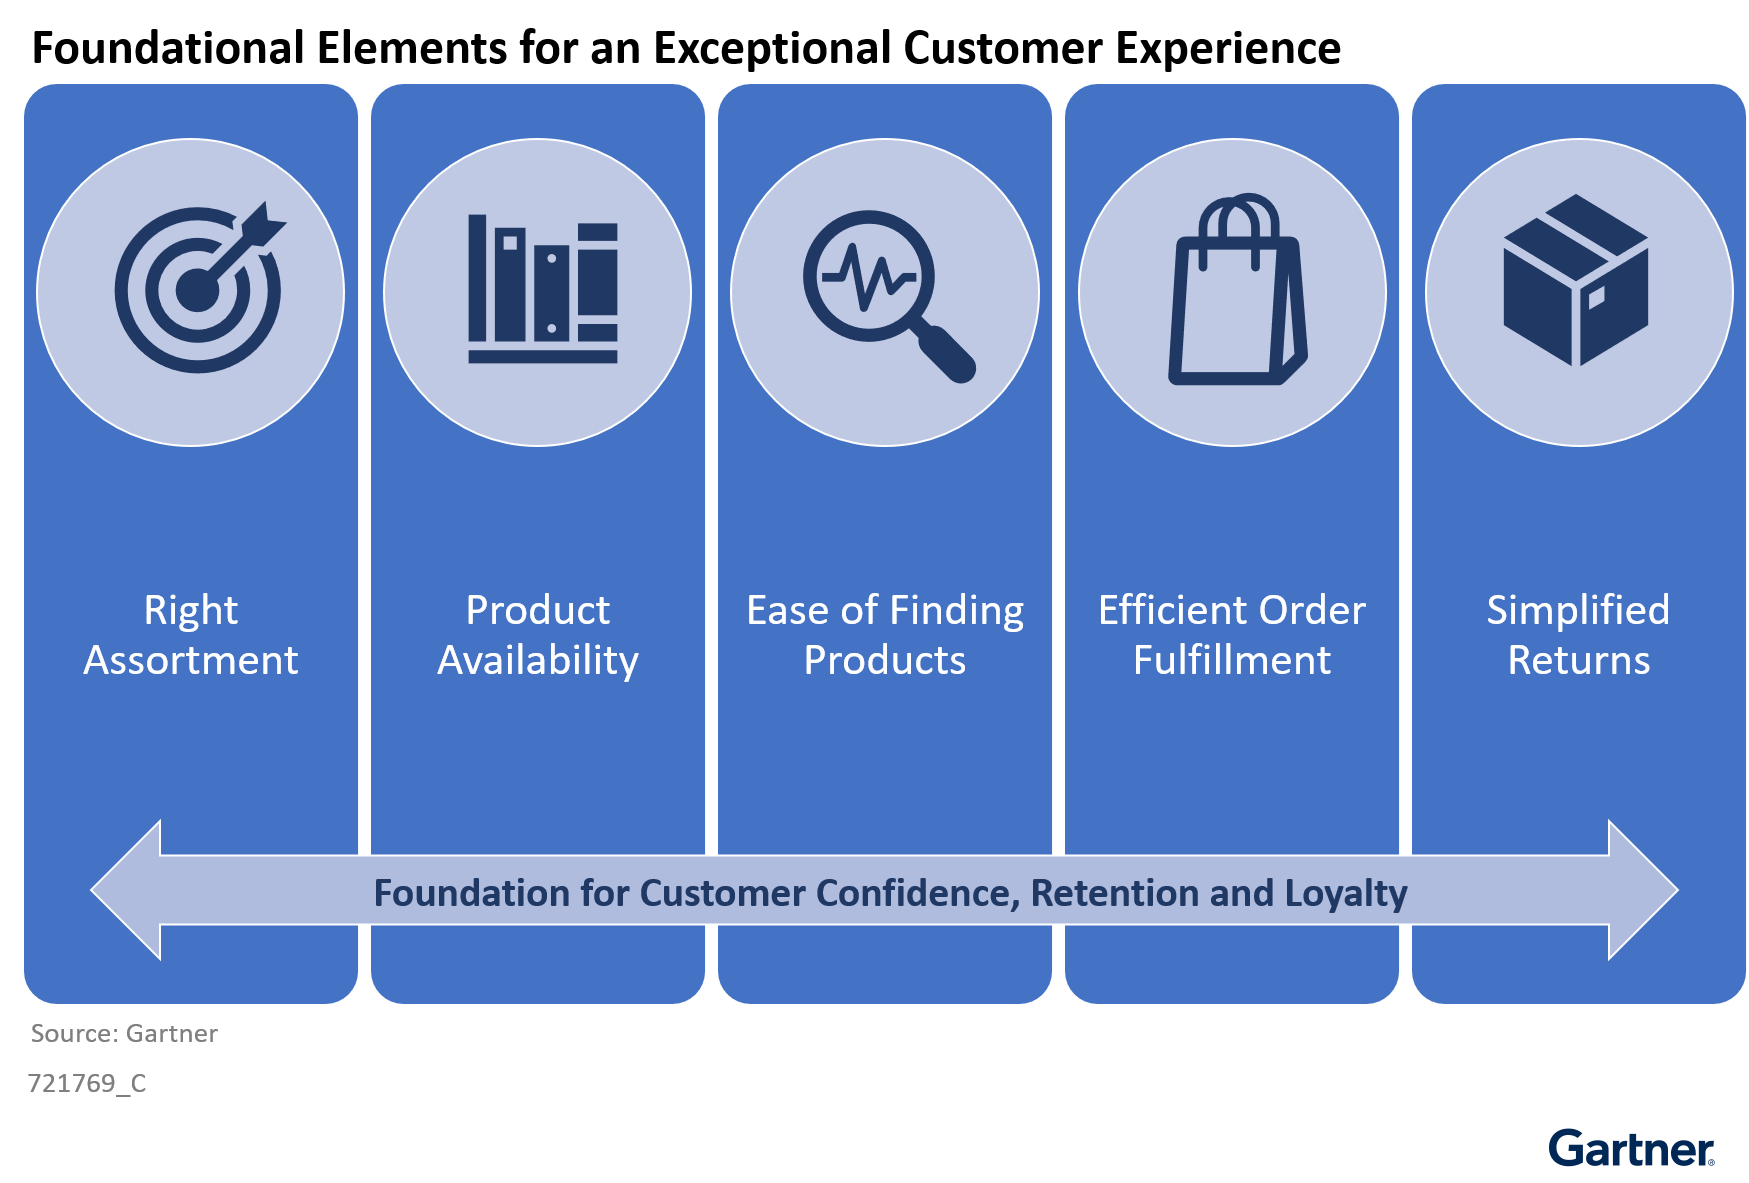 Figure 1: Foundational Elements for an Exceptional Customer Experience